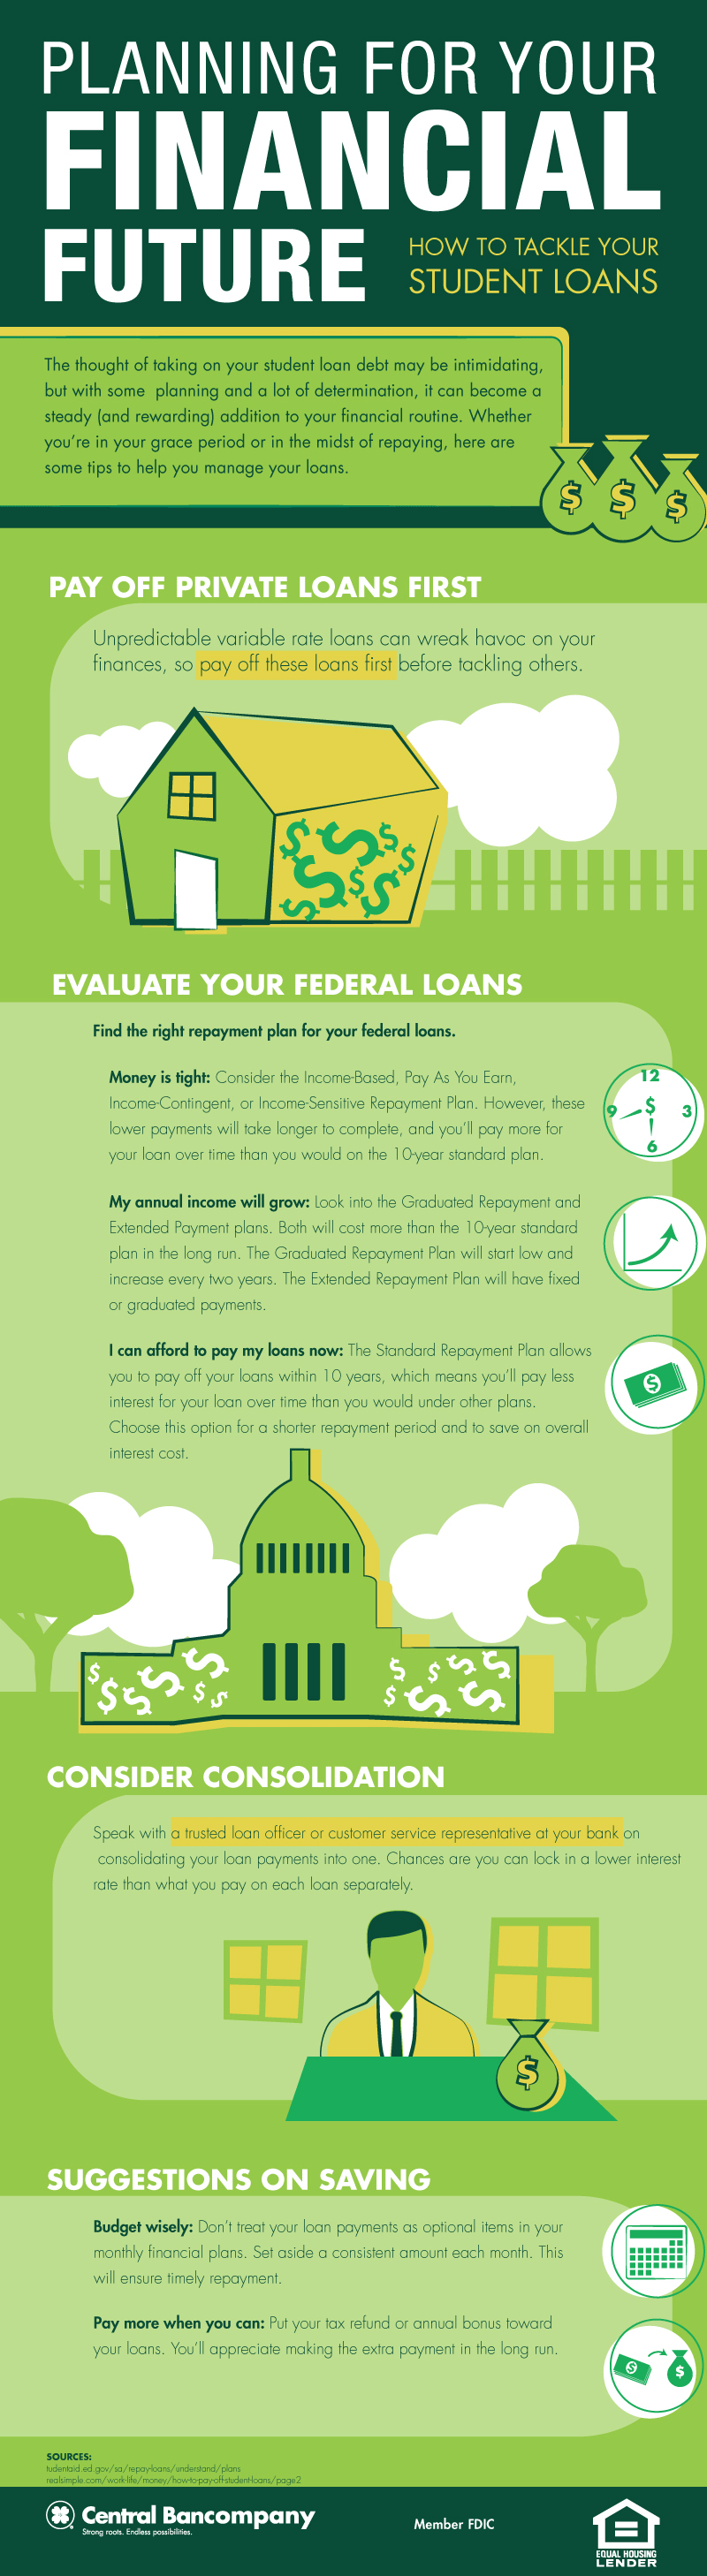 An infographic outlining ways to tackle student loan debt